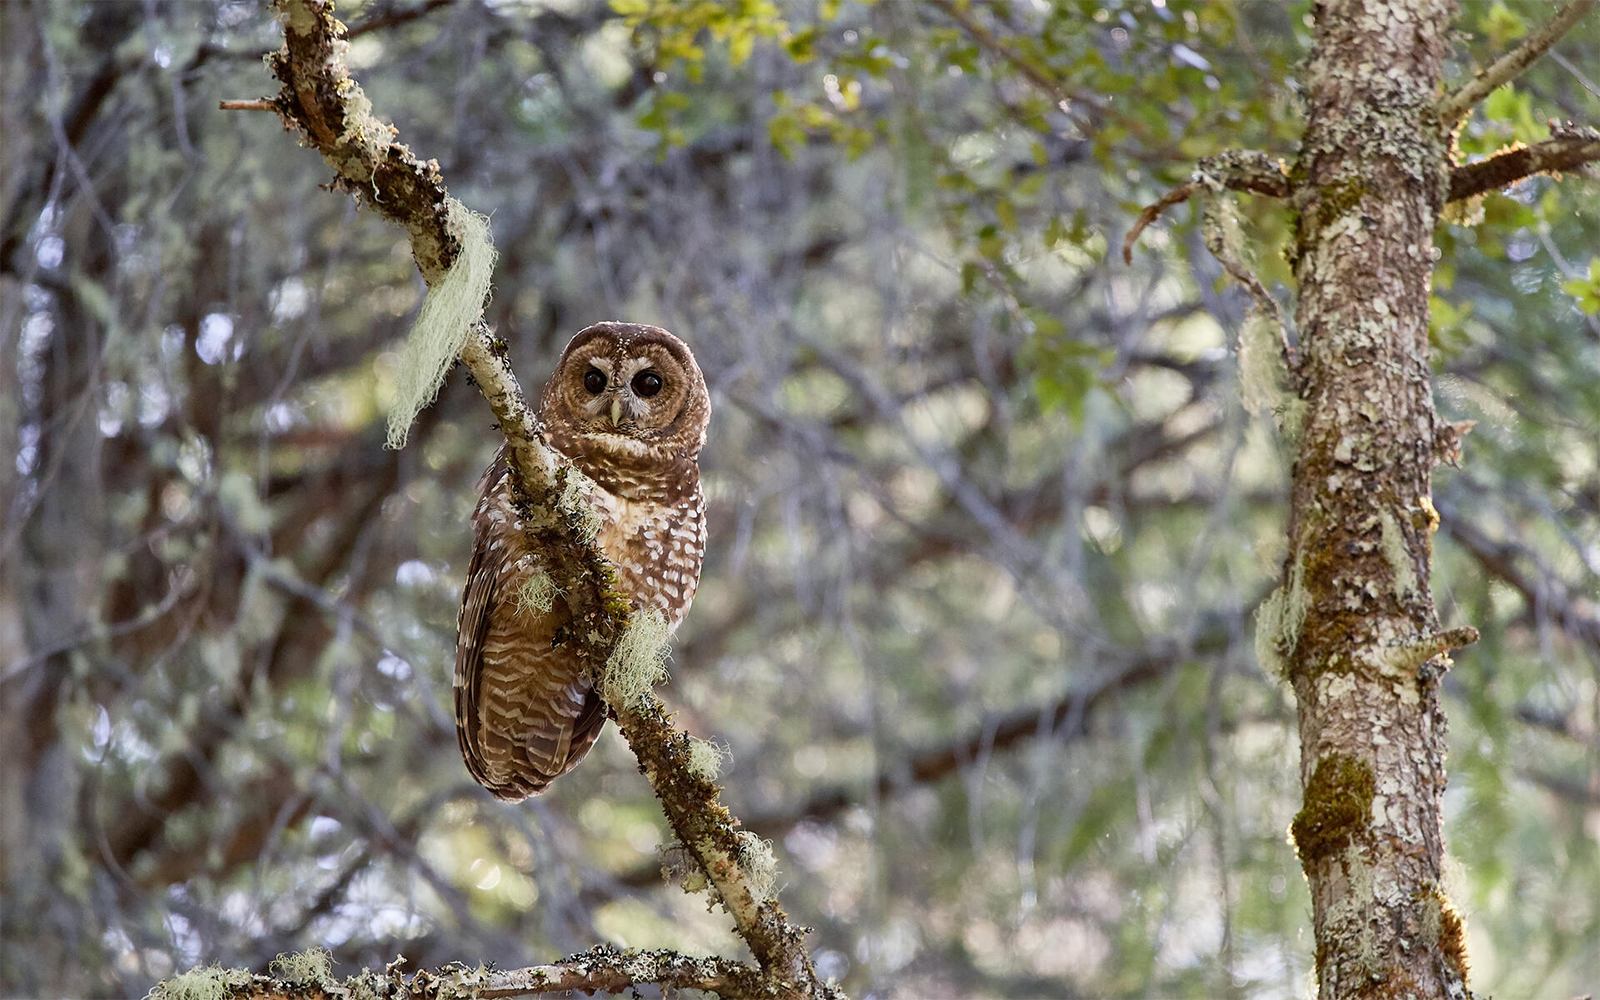 Lawsuit Filed Challenging Removal of 3.4 Million Acres of Critical Spotted Owl Habitat